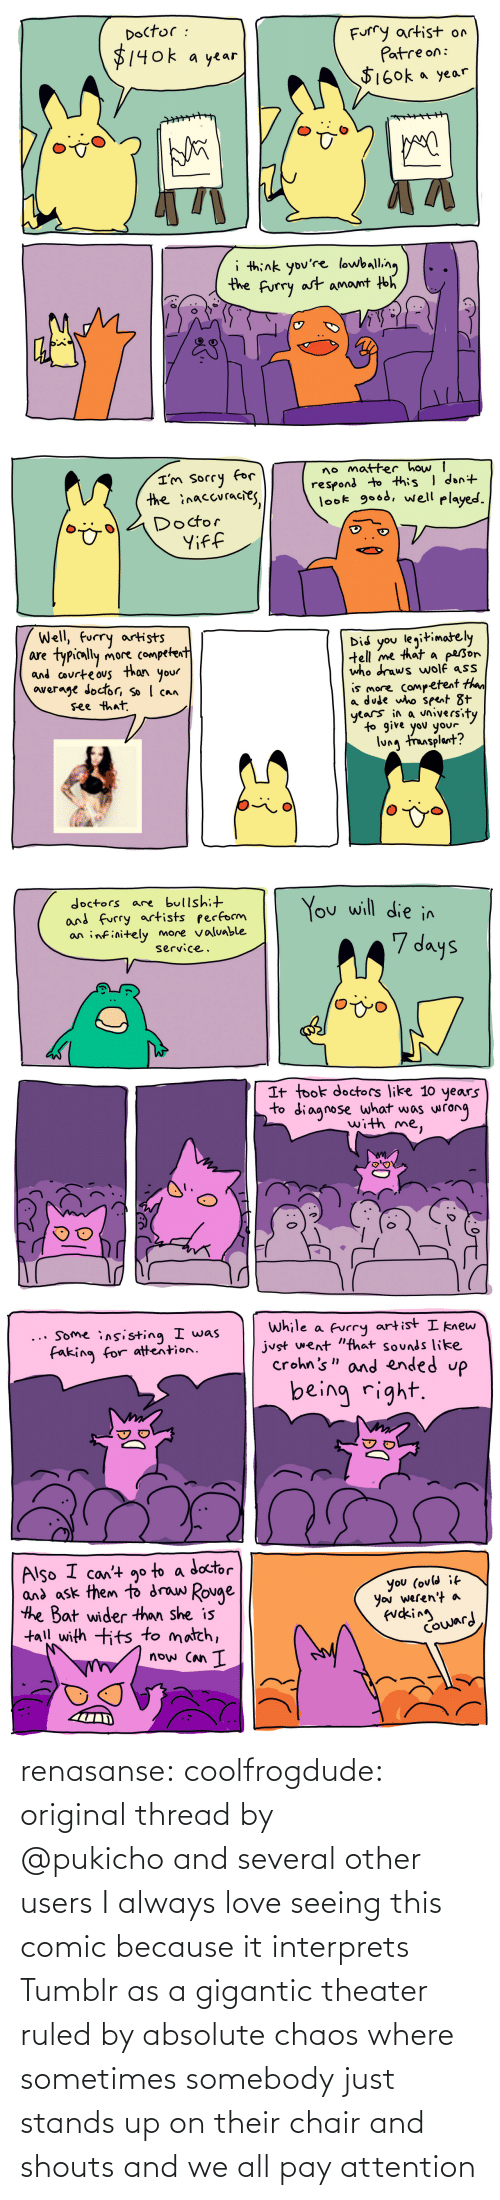 gigantic: renasanse: coolfrogdude: original thread by @pukicho and several other users I always love seeing this comic because it interprets Tumblr as a gigantic theater ruled by absolute chaos where sometimes somebody just stands up on their chair and shouts and we all pay attention